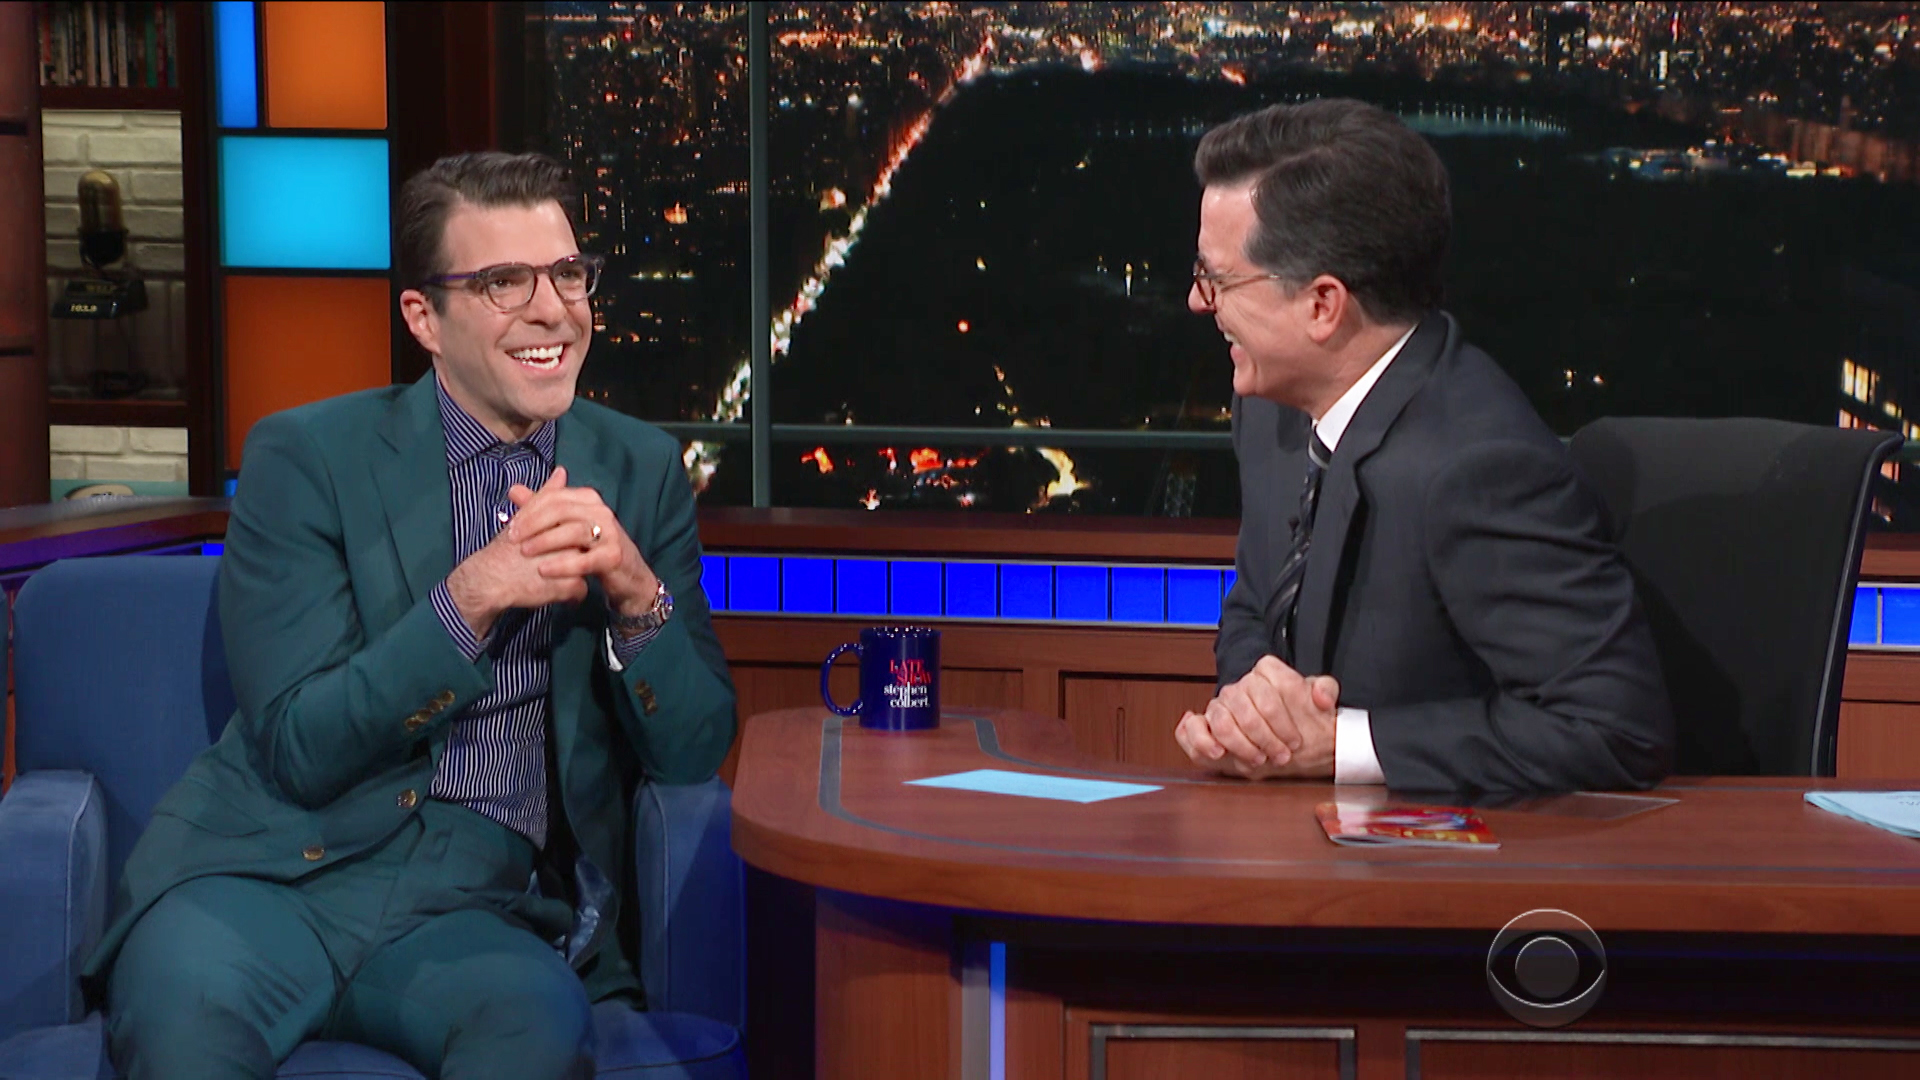 Watch The Late Show with Stephen Colbert Season 3 Episode 144: 5/21/18  (Zachary Quinto, Vanessa Bayer, Dean Baquet) - Full show on CBS All Access